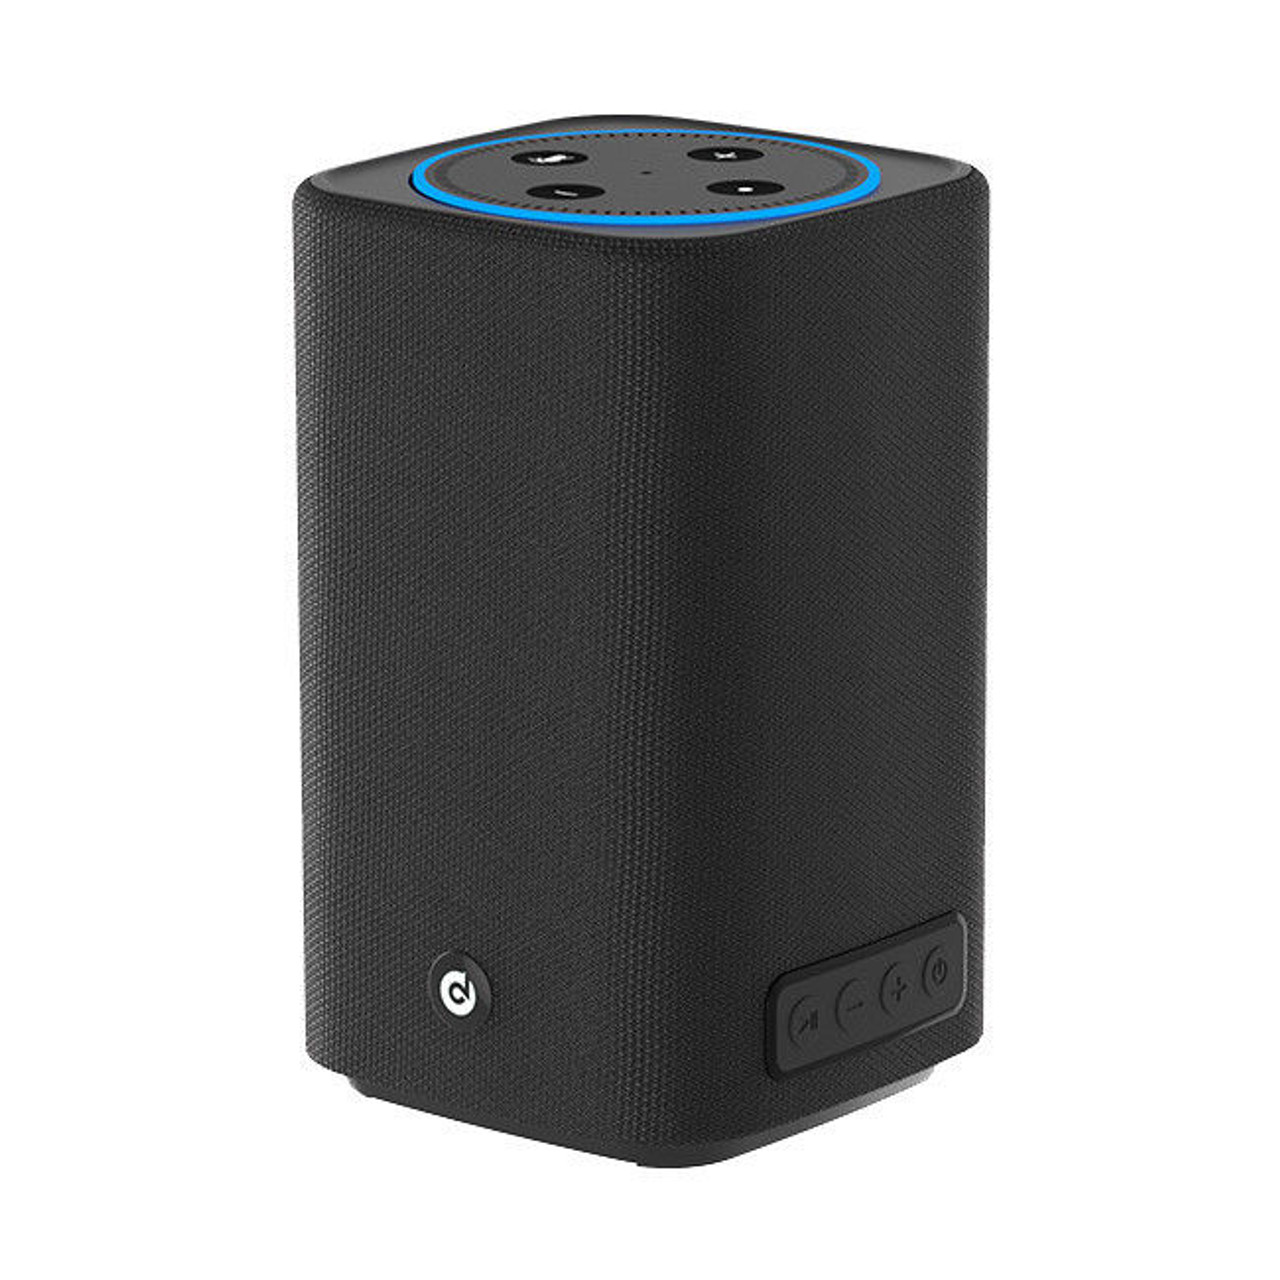 Doss WB118 Powerbox Blue Trim Portable Bluetooth Speaker